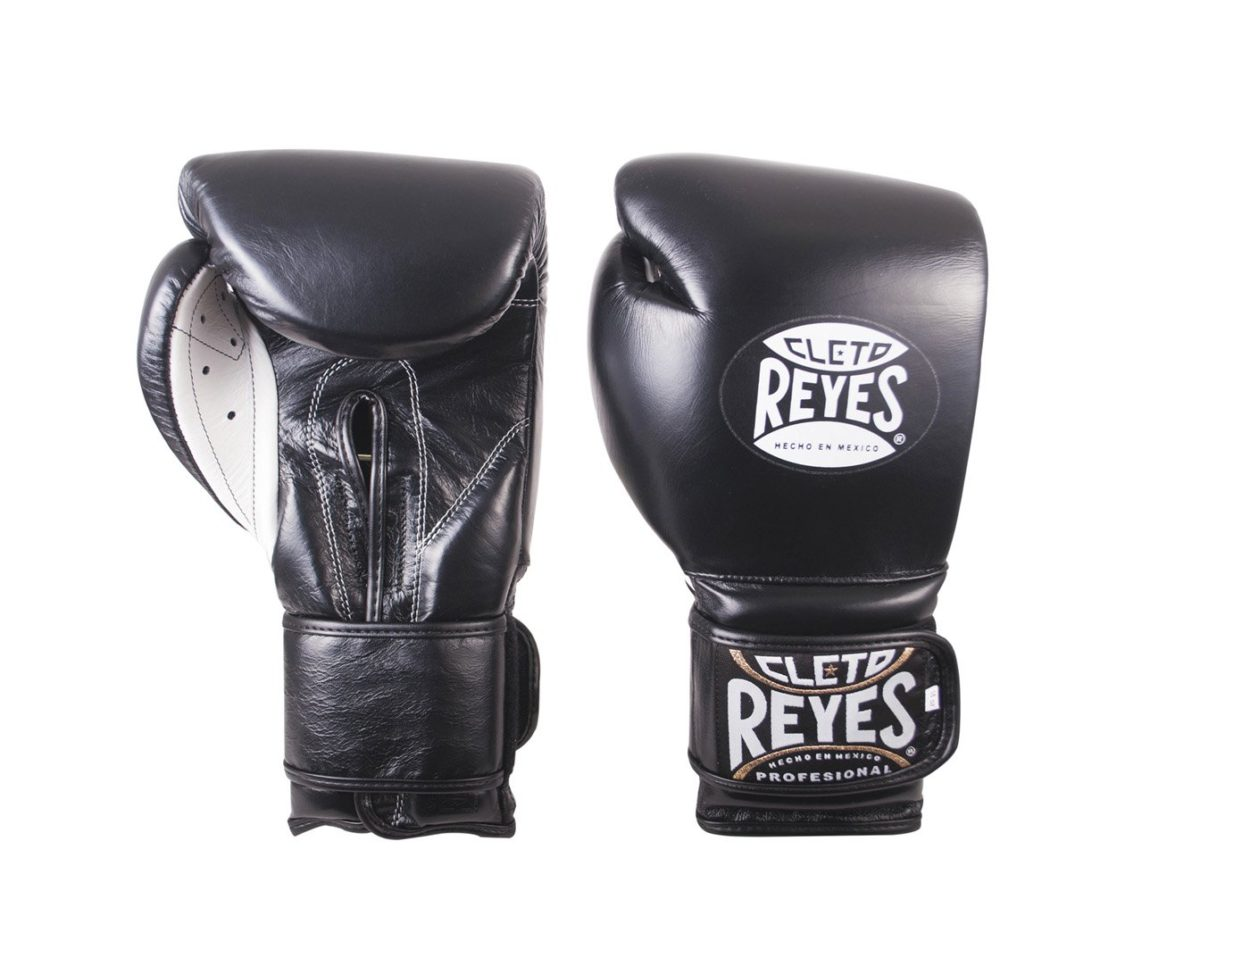 Cleto-reyes-boxing-gloves